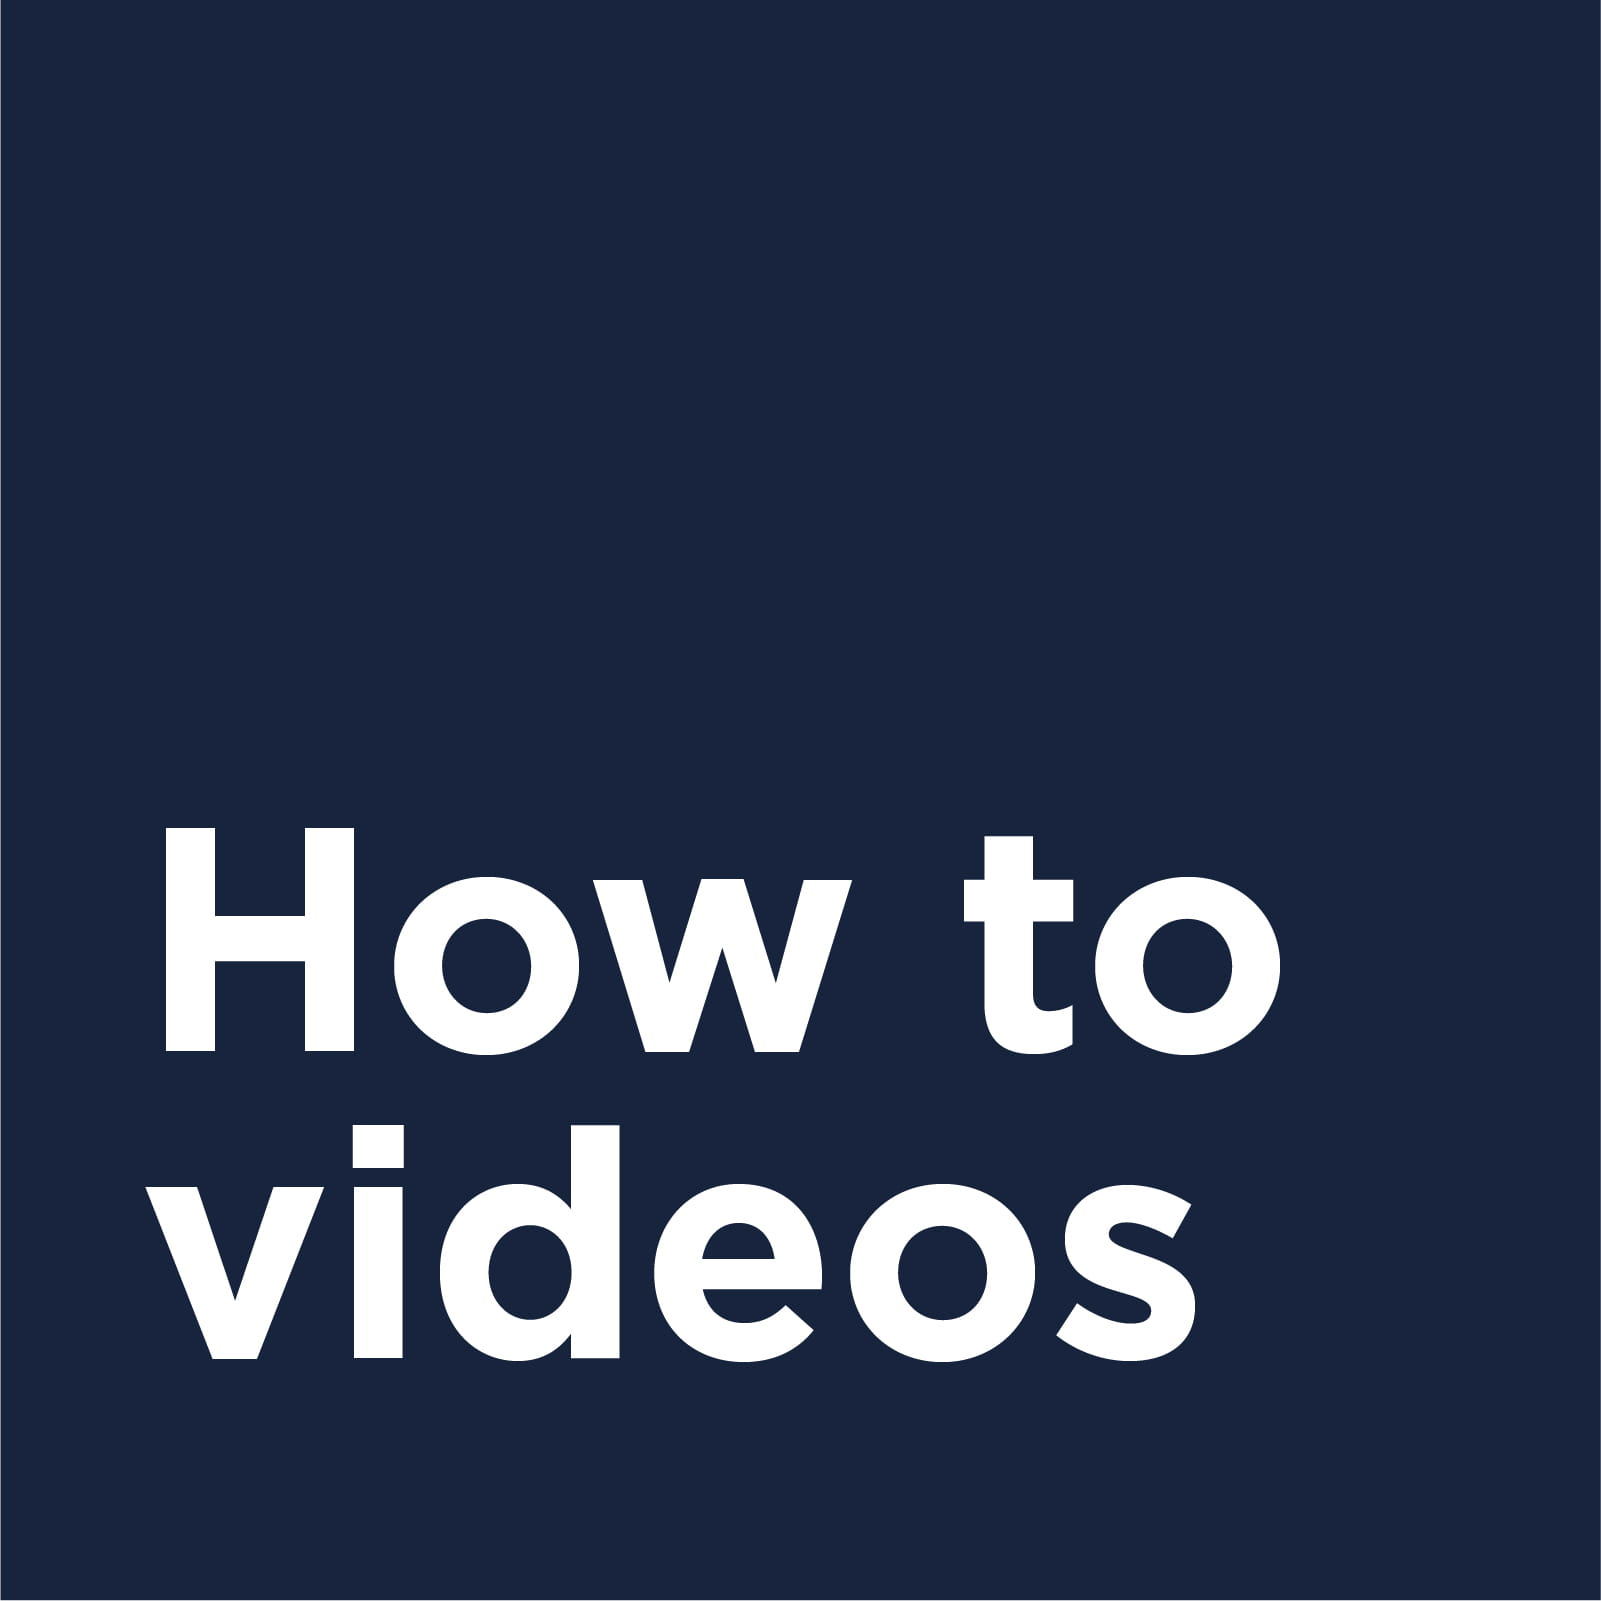 Watch our how to videos